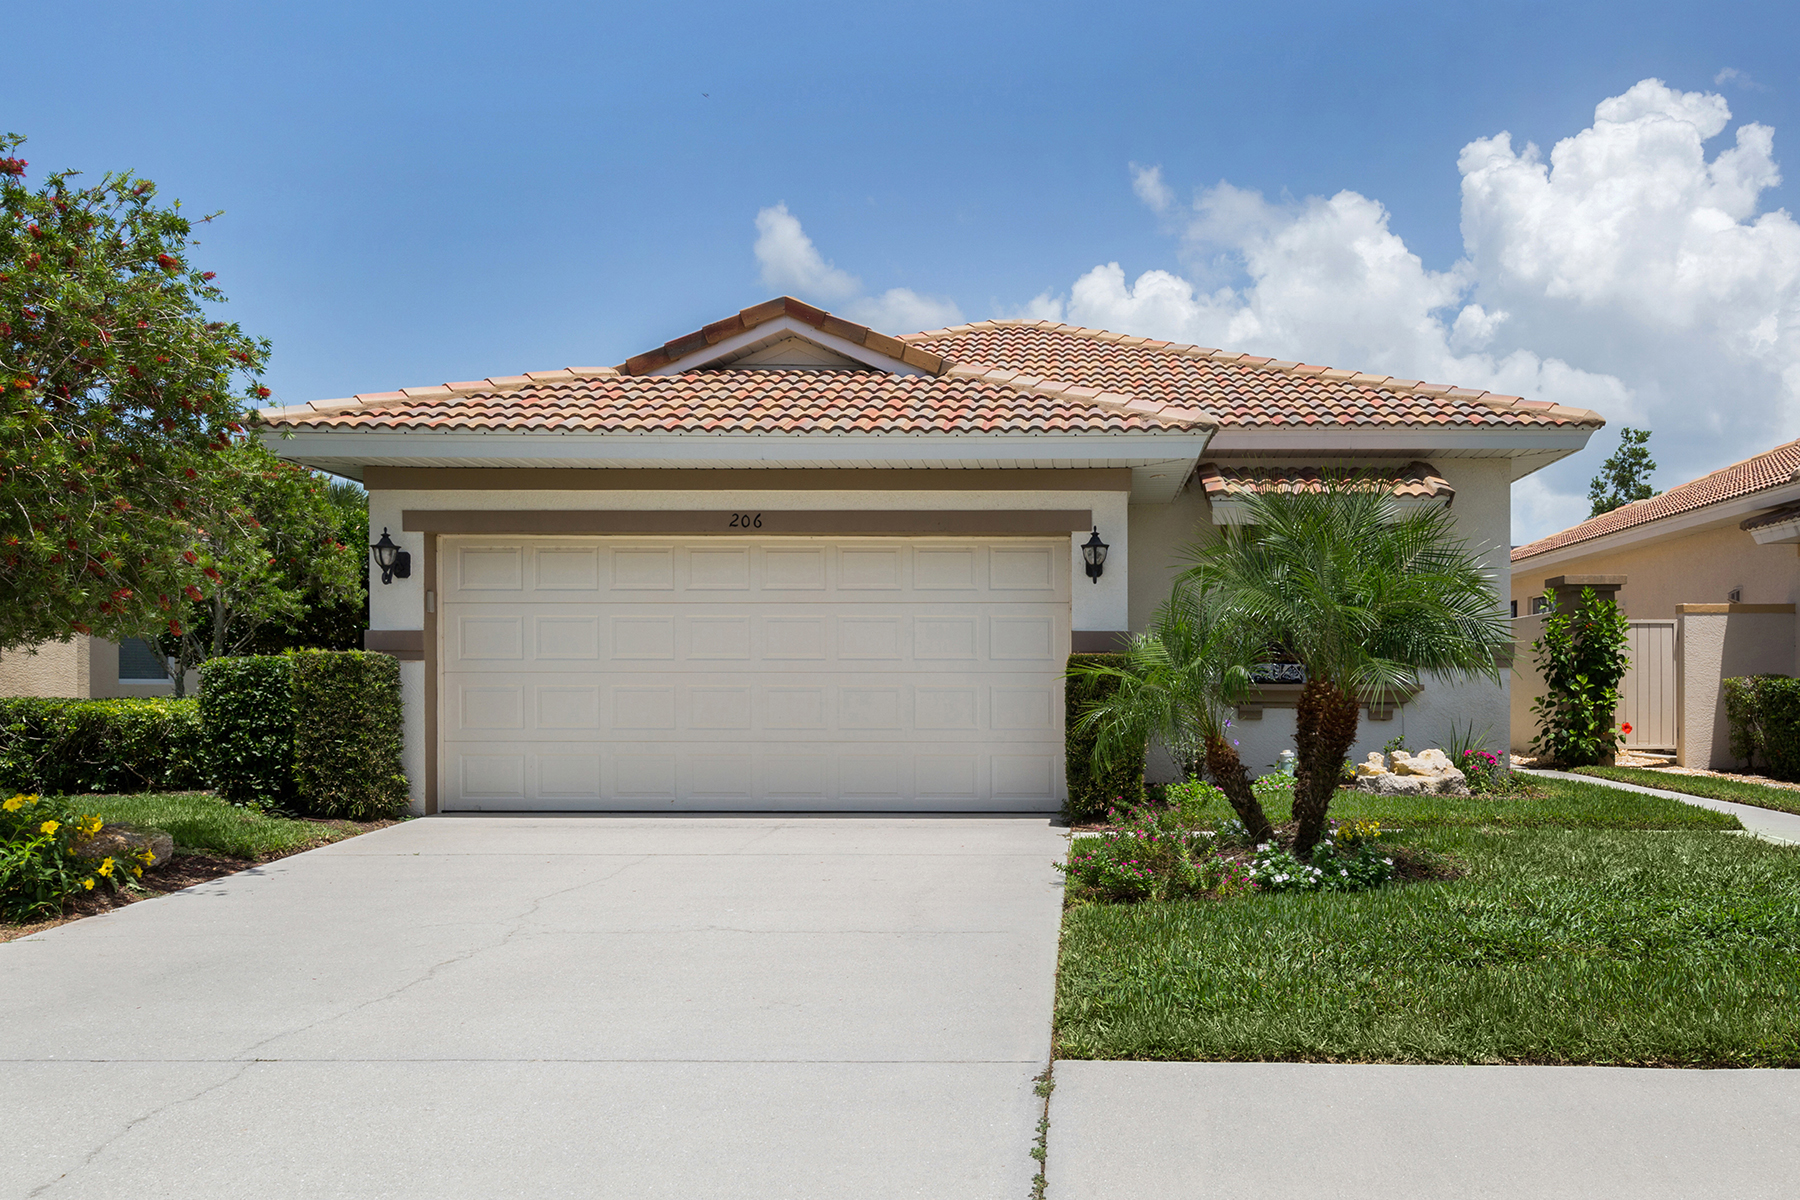 Single Family Homes for Sale at VENETIAN GOLF & RIVER CLUB 206 Padova Way , 29 North Venice, Florida 34275 United States